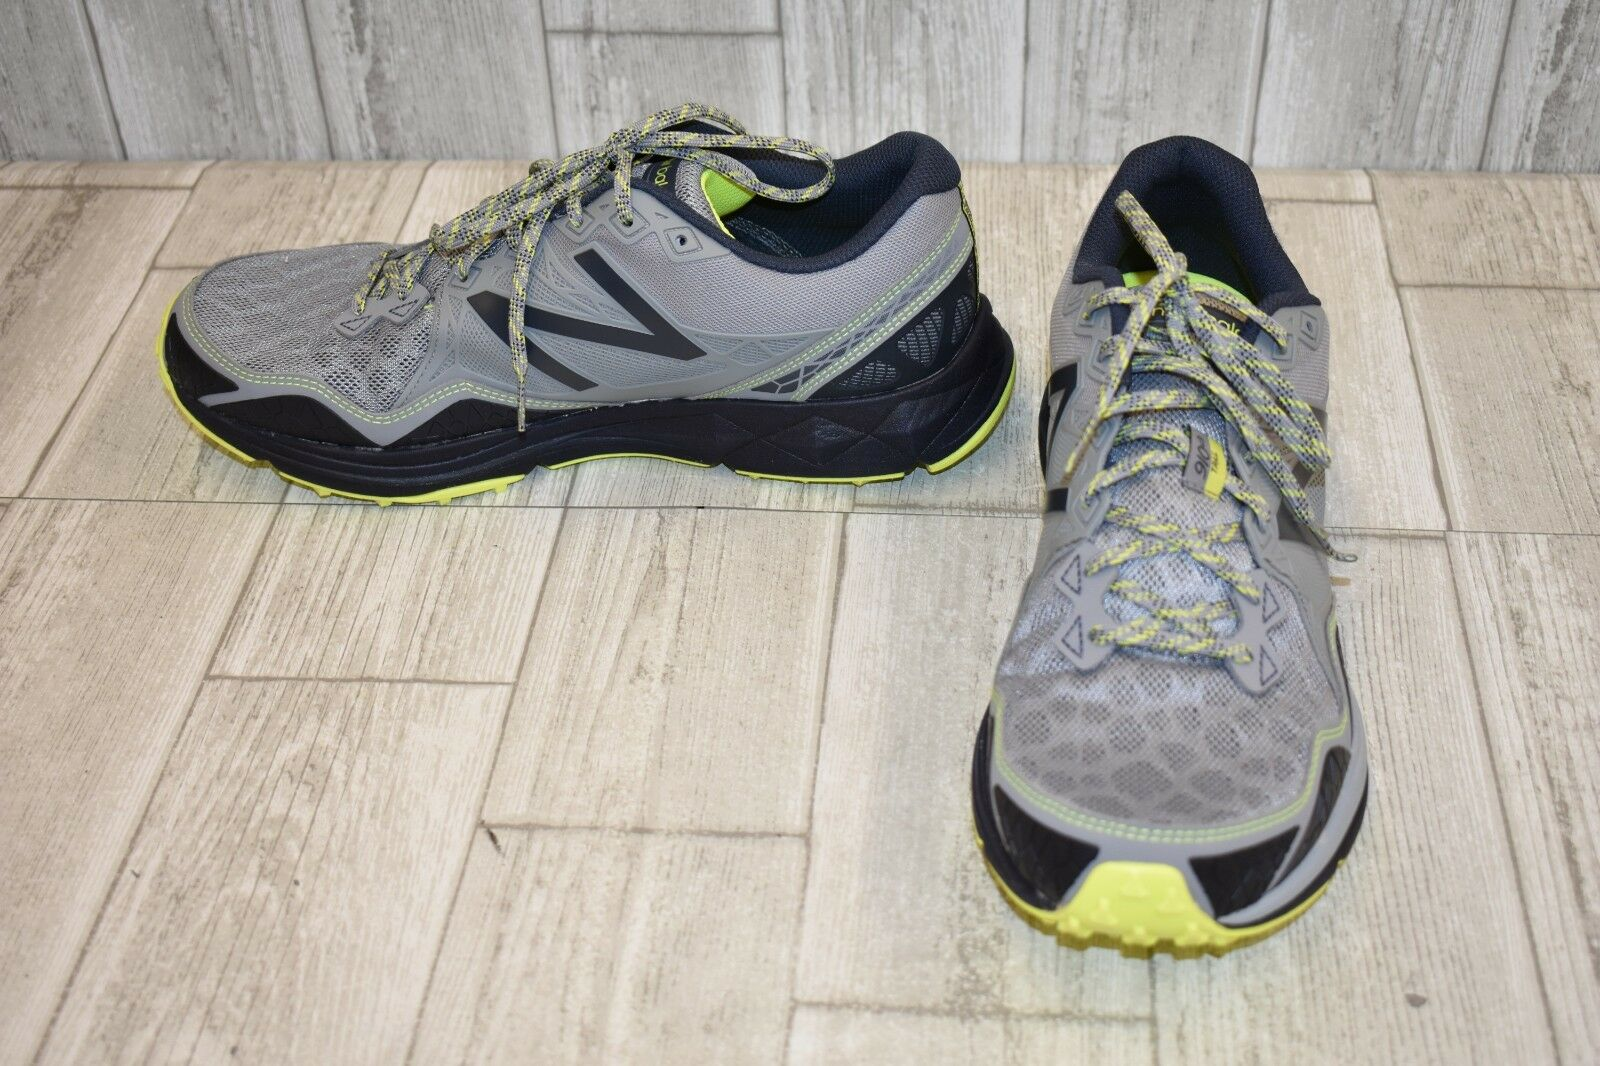 New balance 910 trail running shoes-men's size size size 11.5 d grey 547258